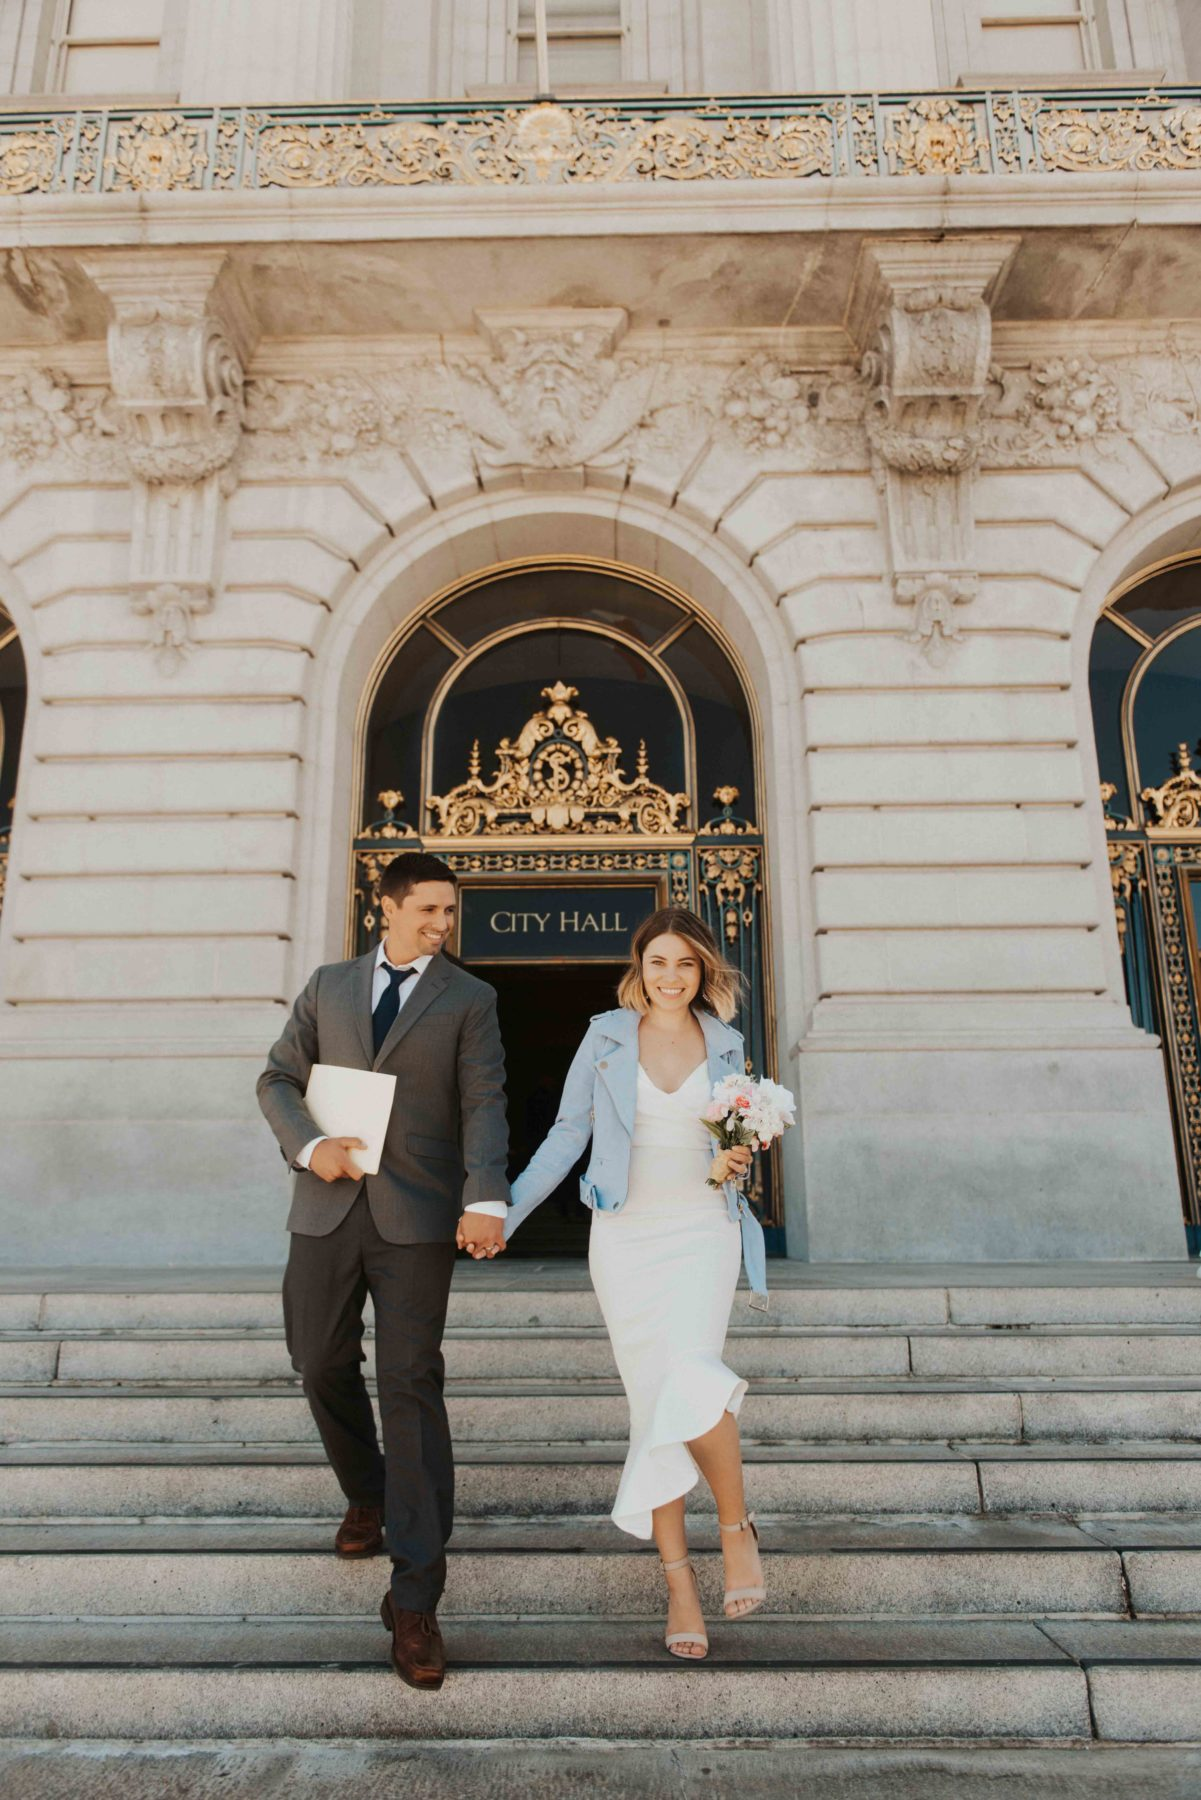 getting married at SF City Hall